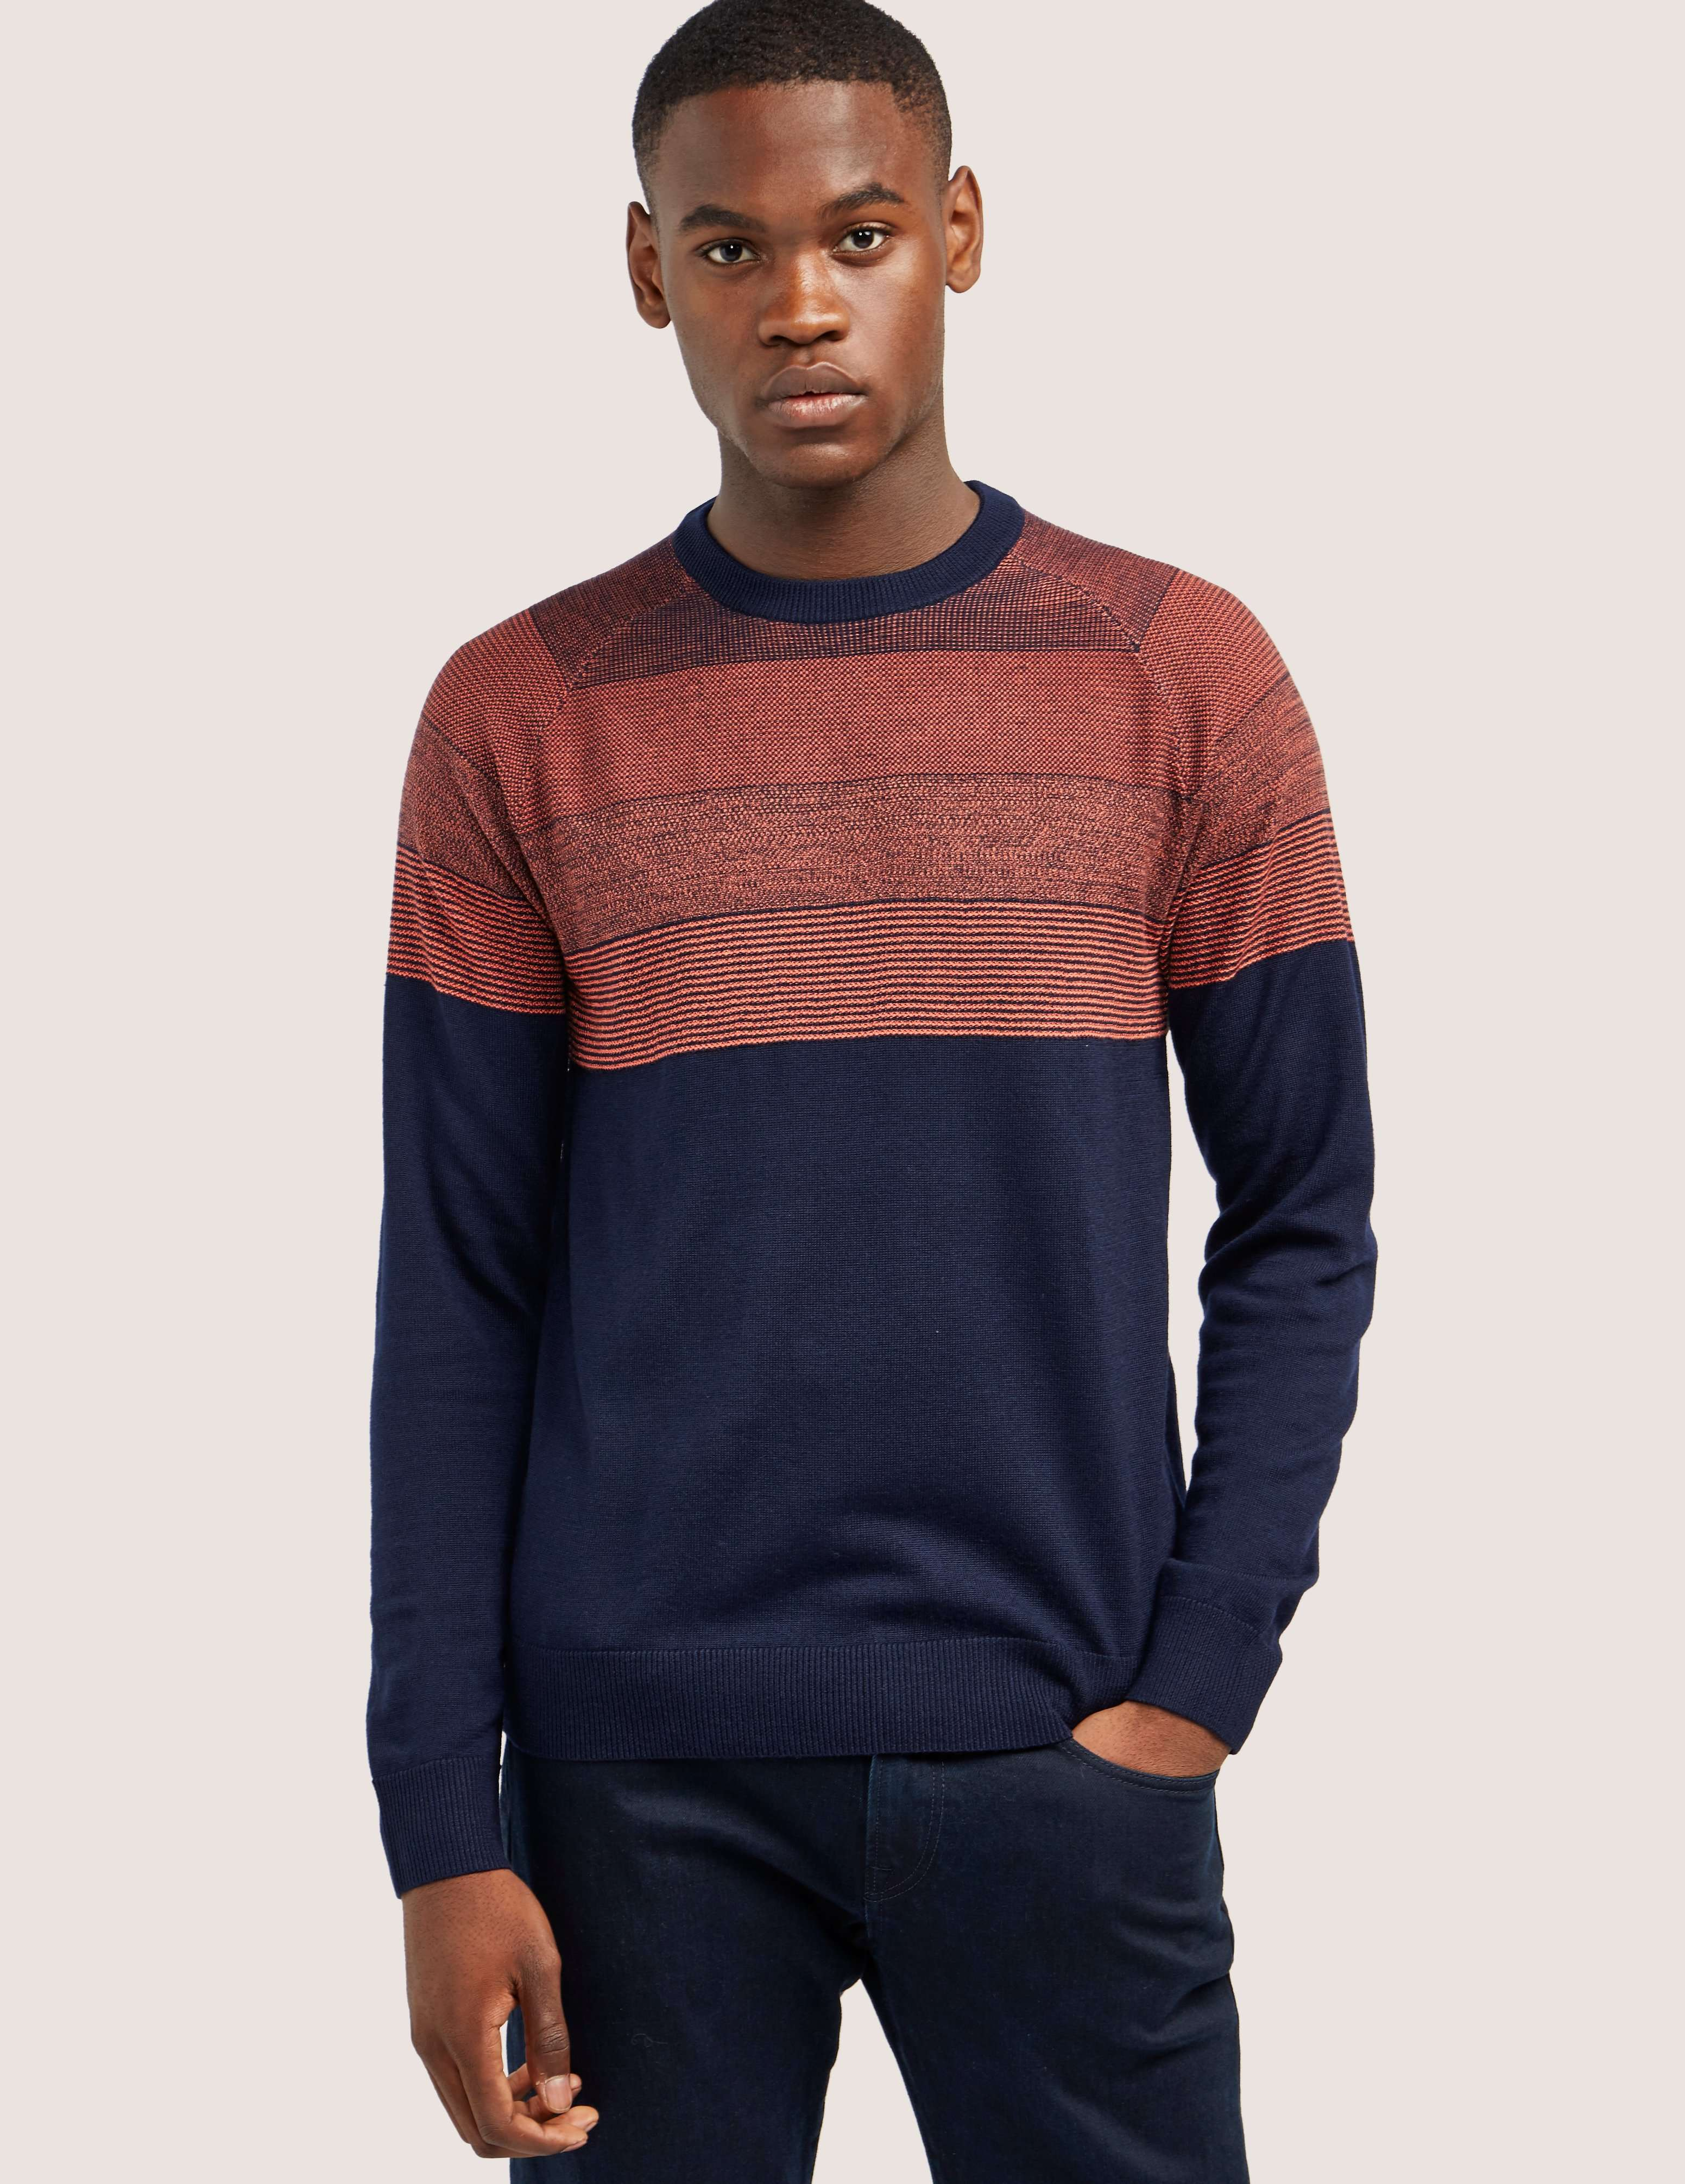 Paul Smith Contrast Long Sleeve Knit